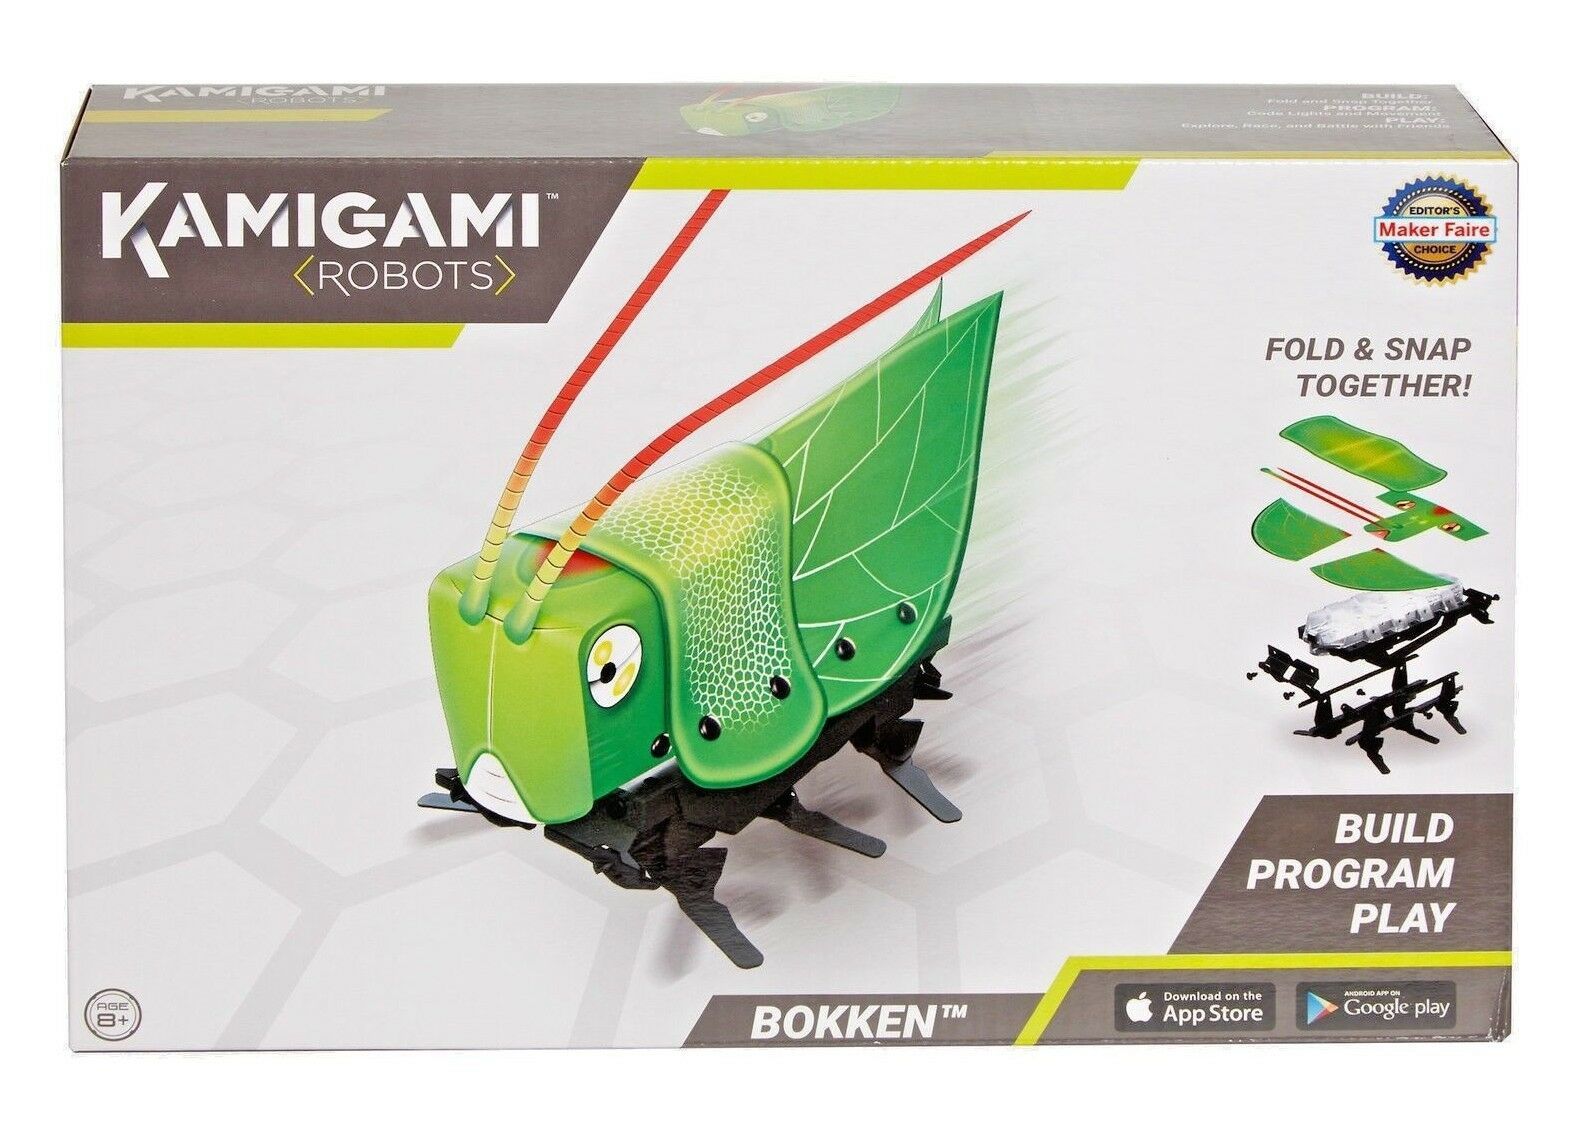 Mattel Kamigami Musubi Robot - Build Program Play - Fold & Snap -  2